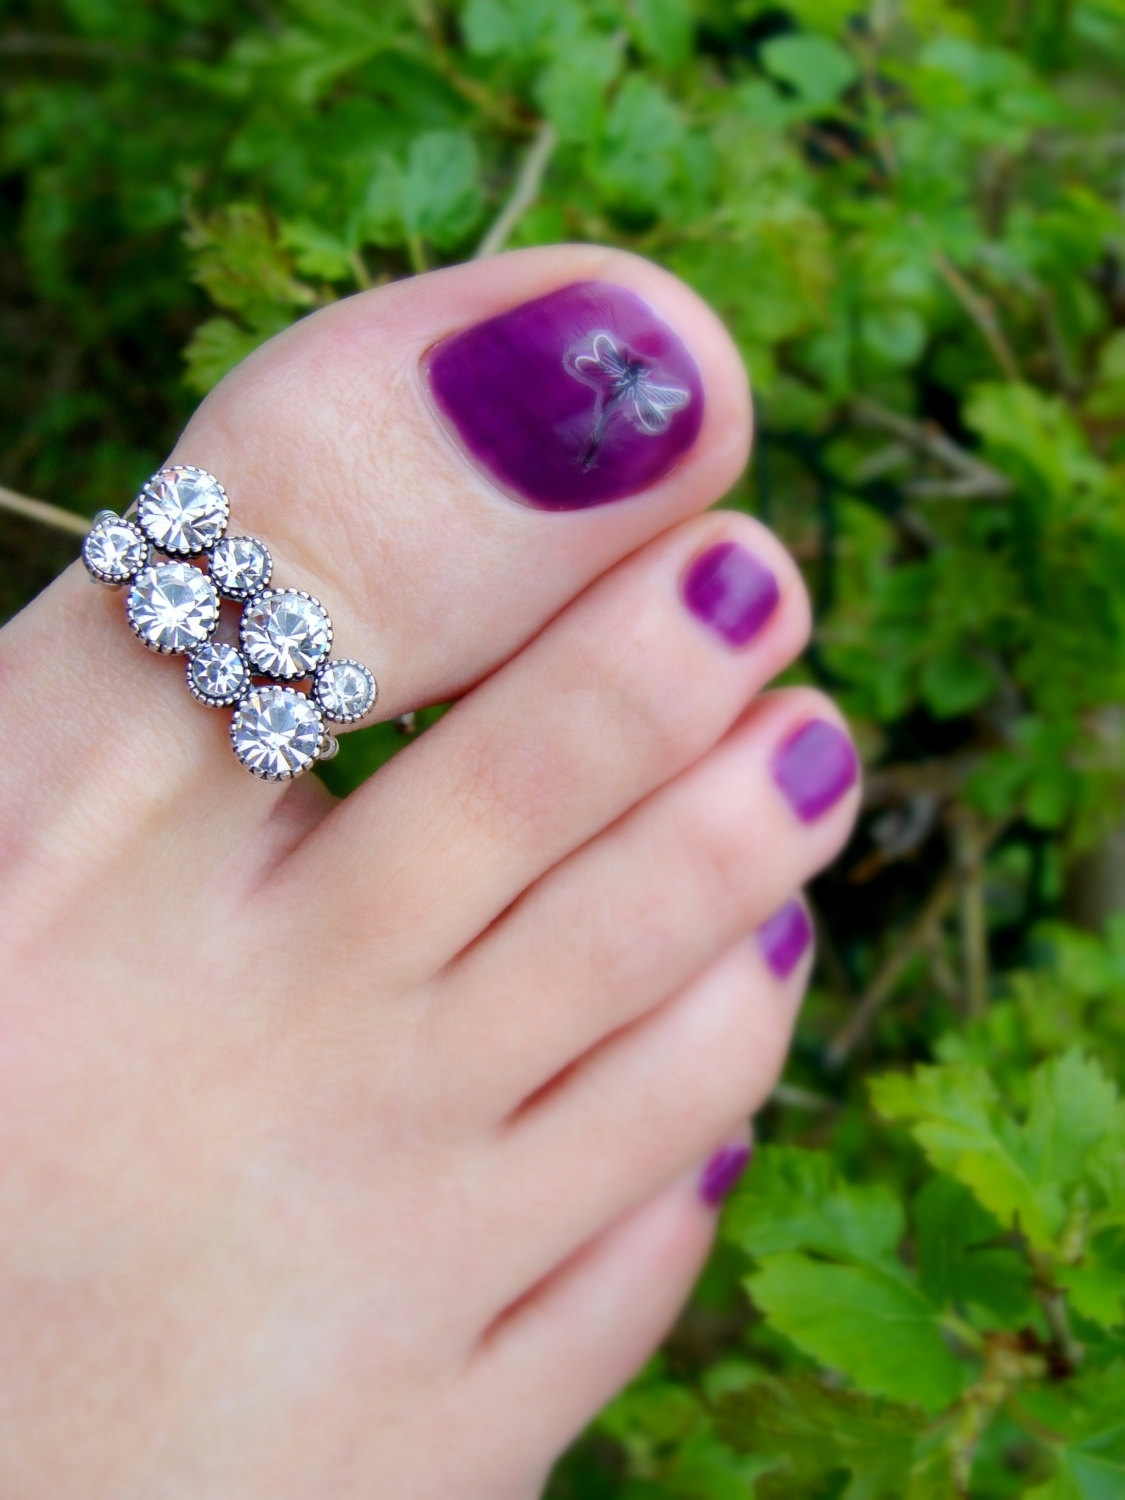 Beautiful Toes Rings | Pazeb & Slippers | Pinterest | Toe Rings In Most Up To Date Big Toe Rings (View 6 of 15)